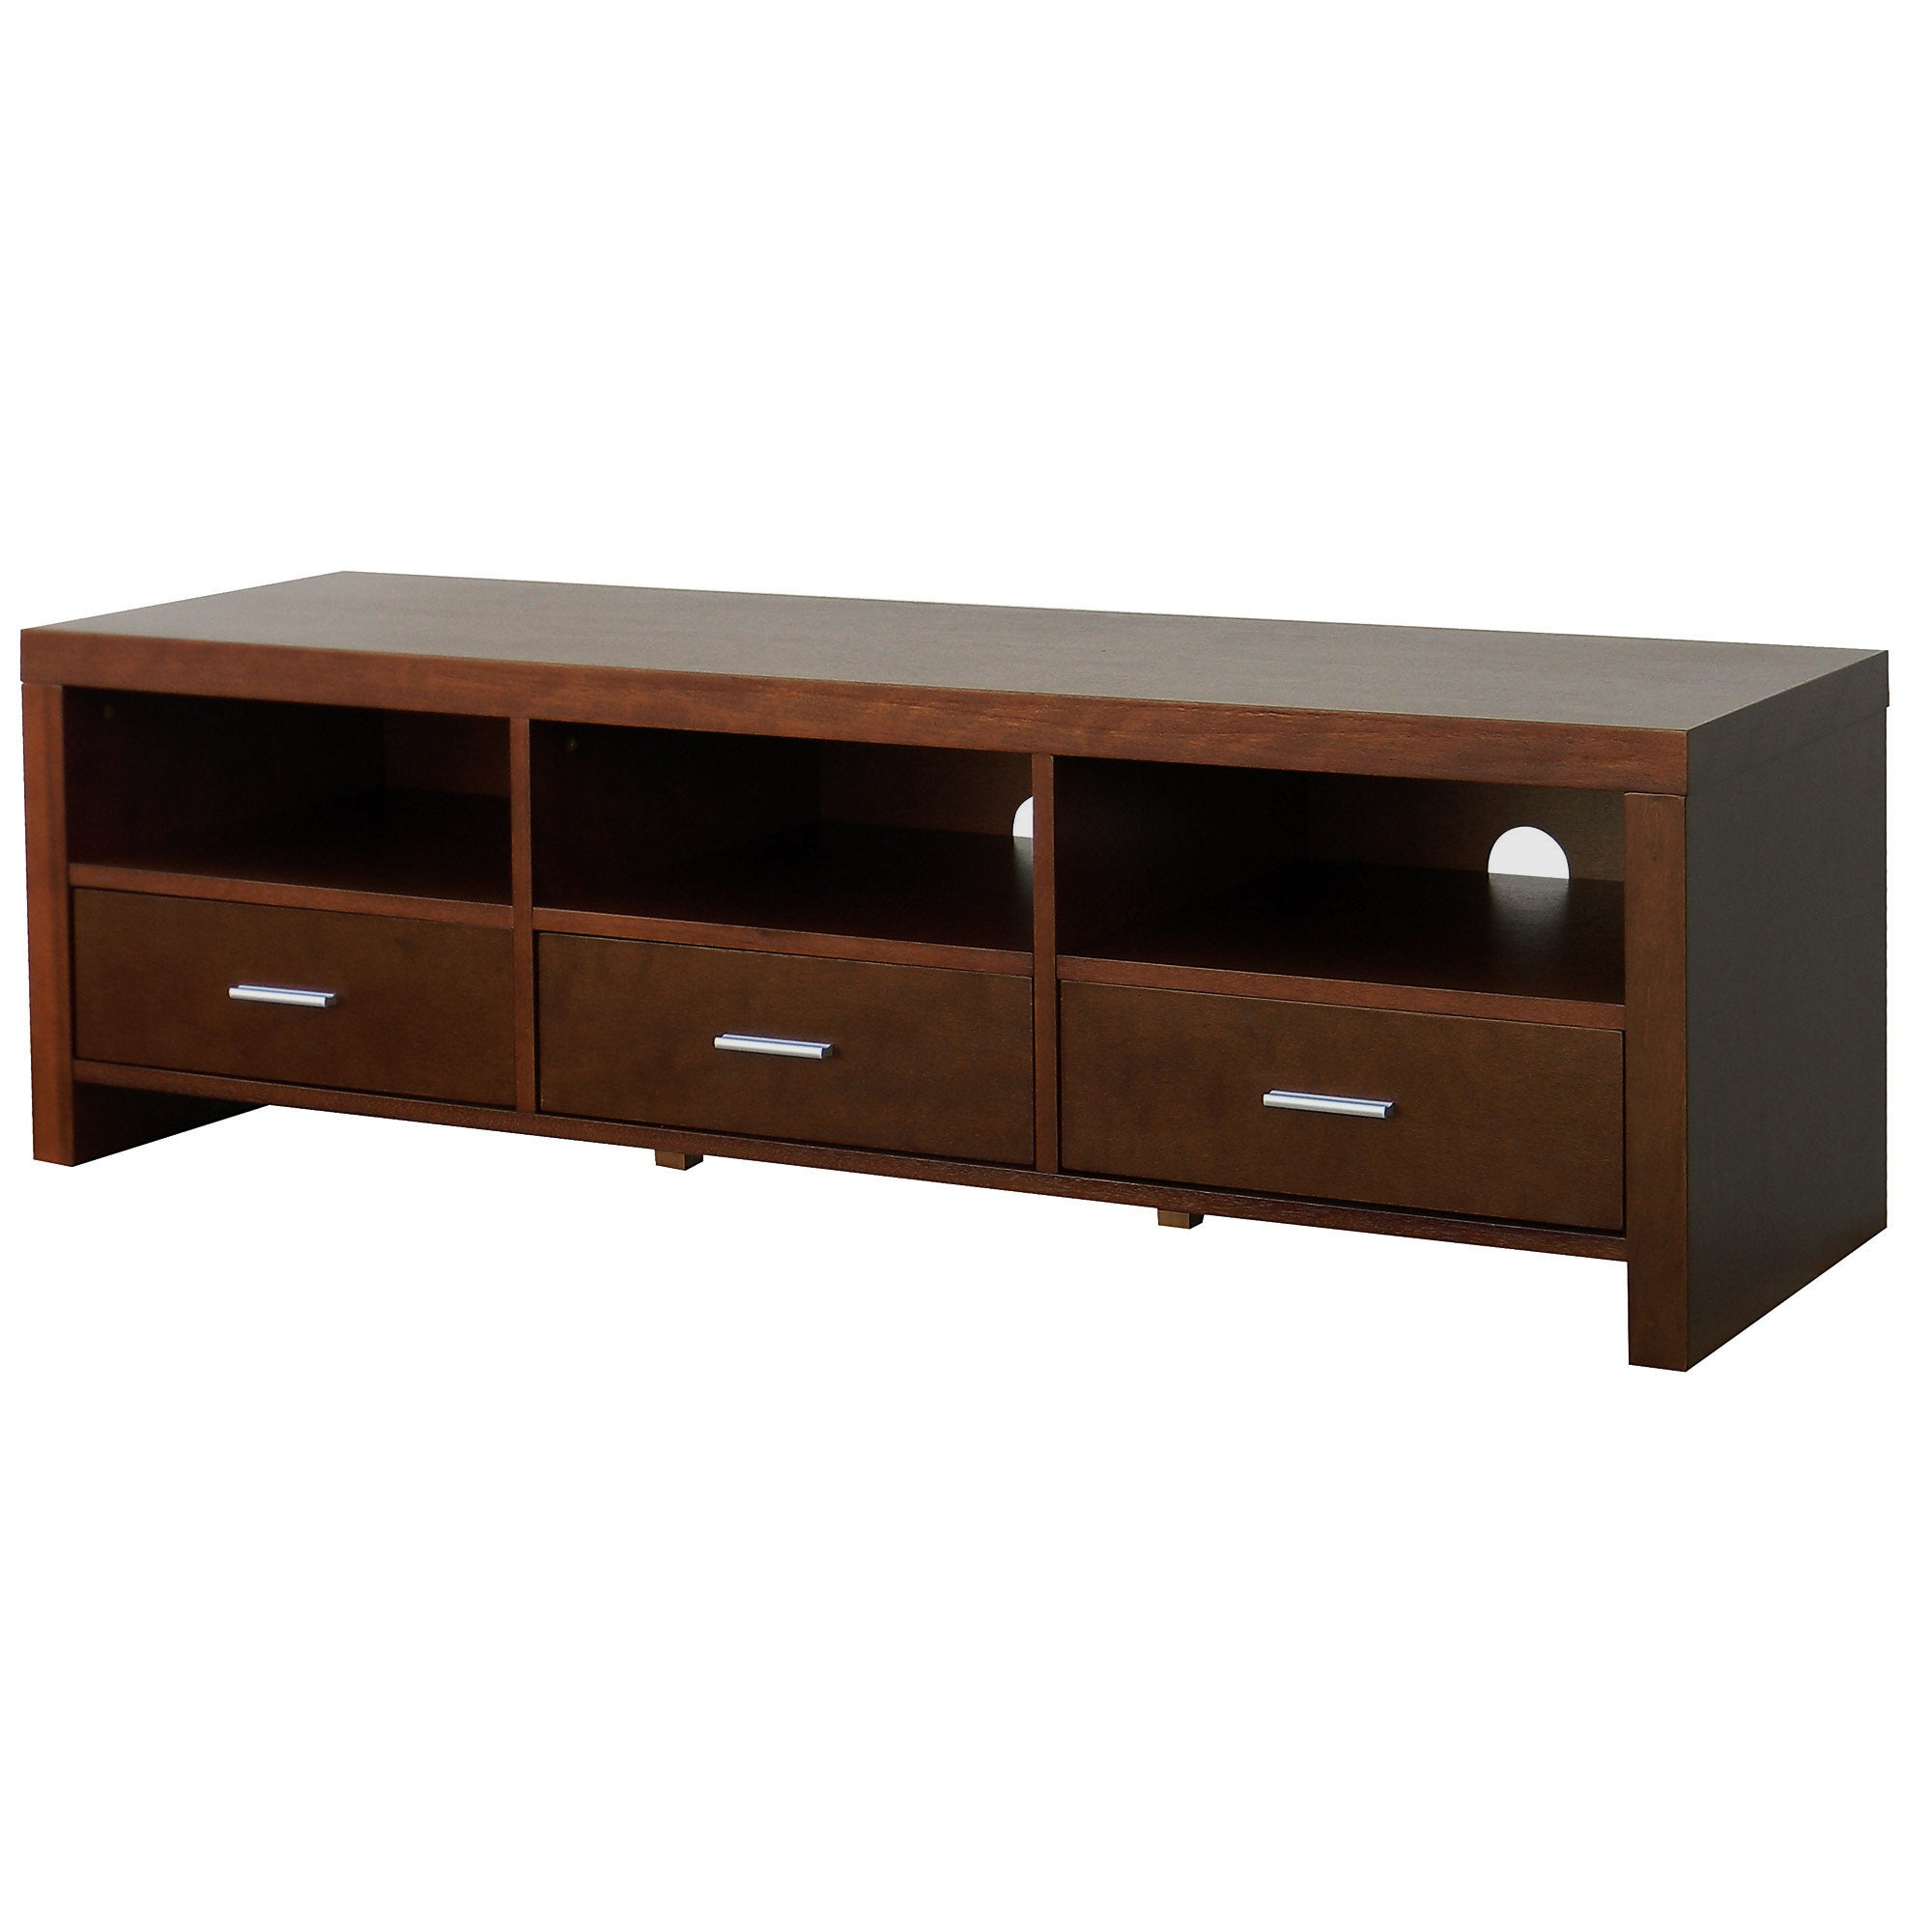 Guildford 58-inch 3-drawer Brown Wood TV Console at Sears.com